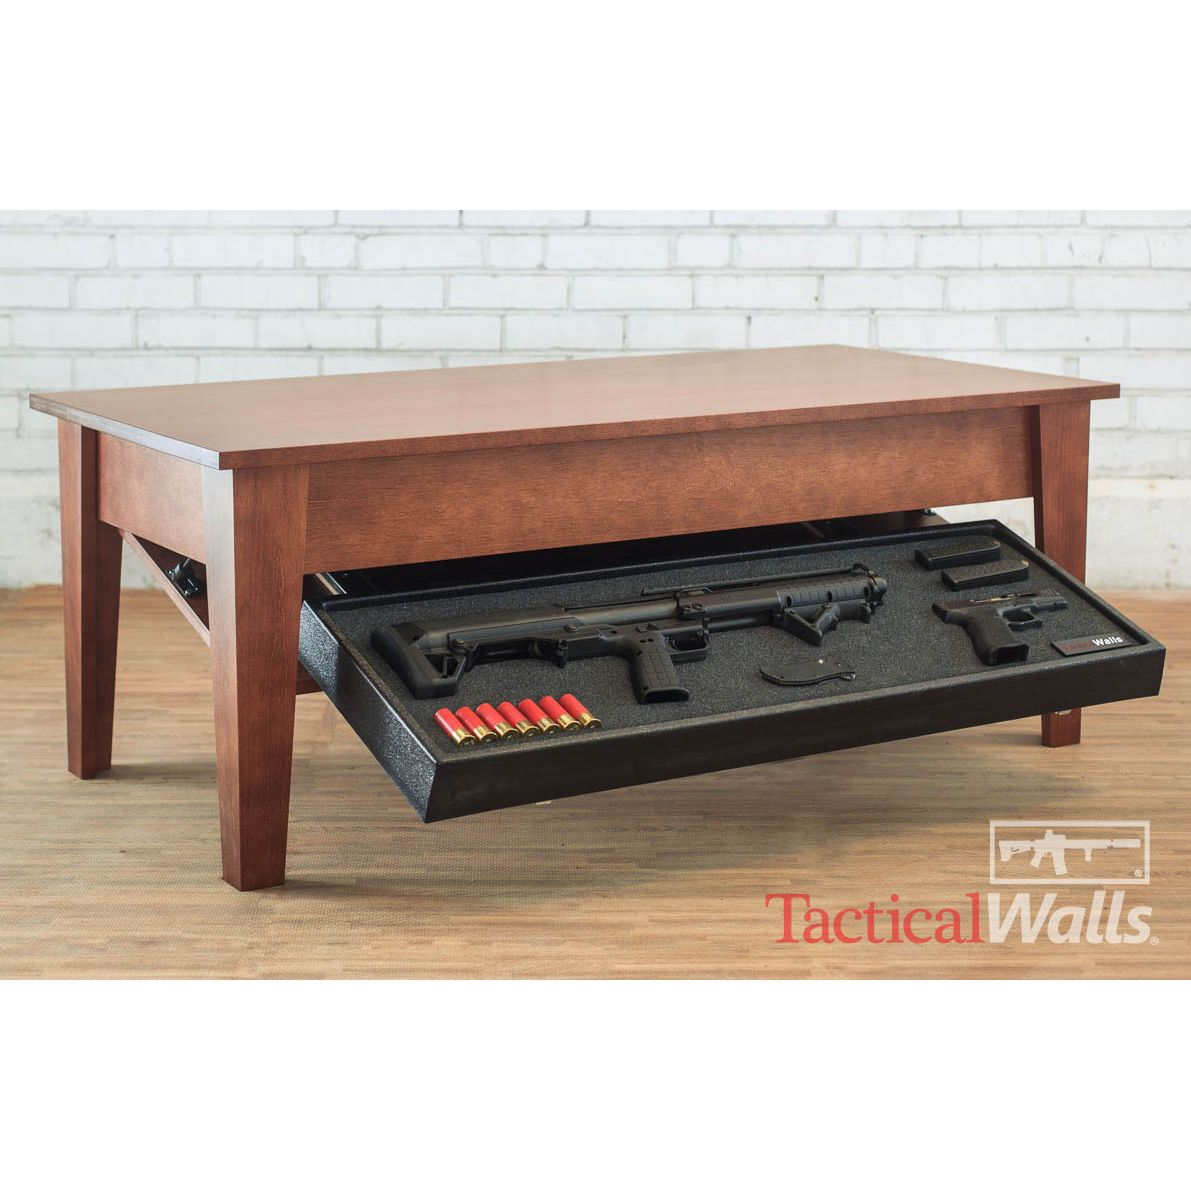 Tremendous Custom Foam Tactical Walls Concealment Coffee Table Onthecornerstone Fun Painted Chair Ideas Images Onthecornerstoneorg